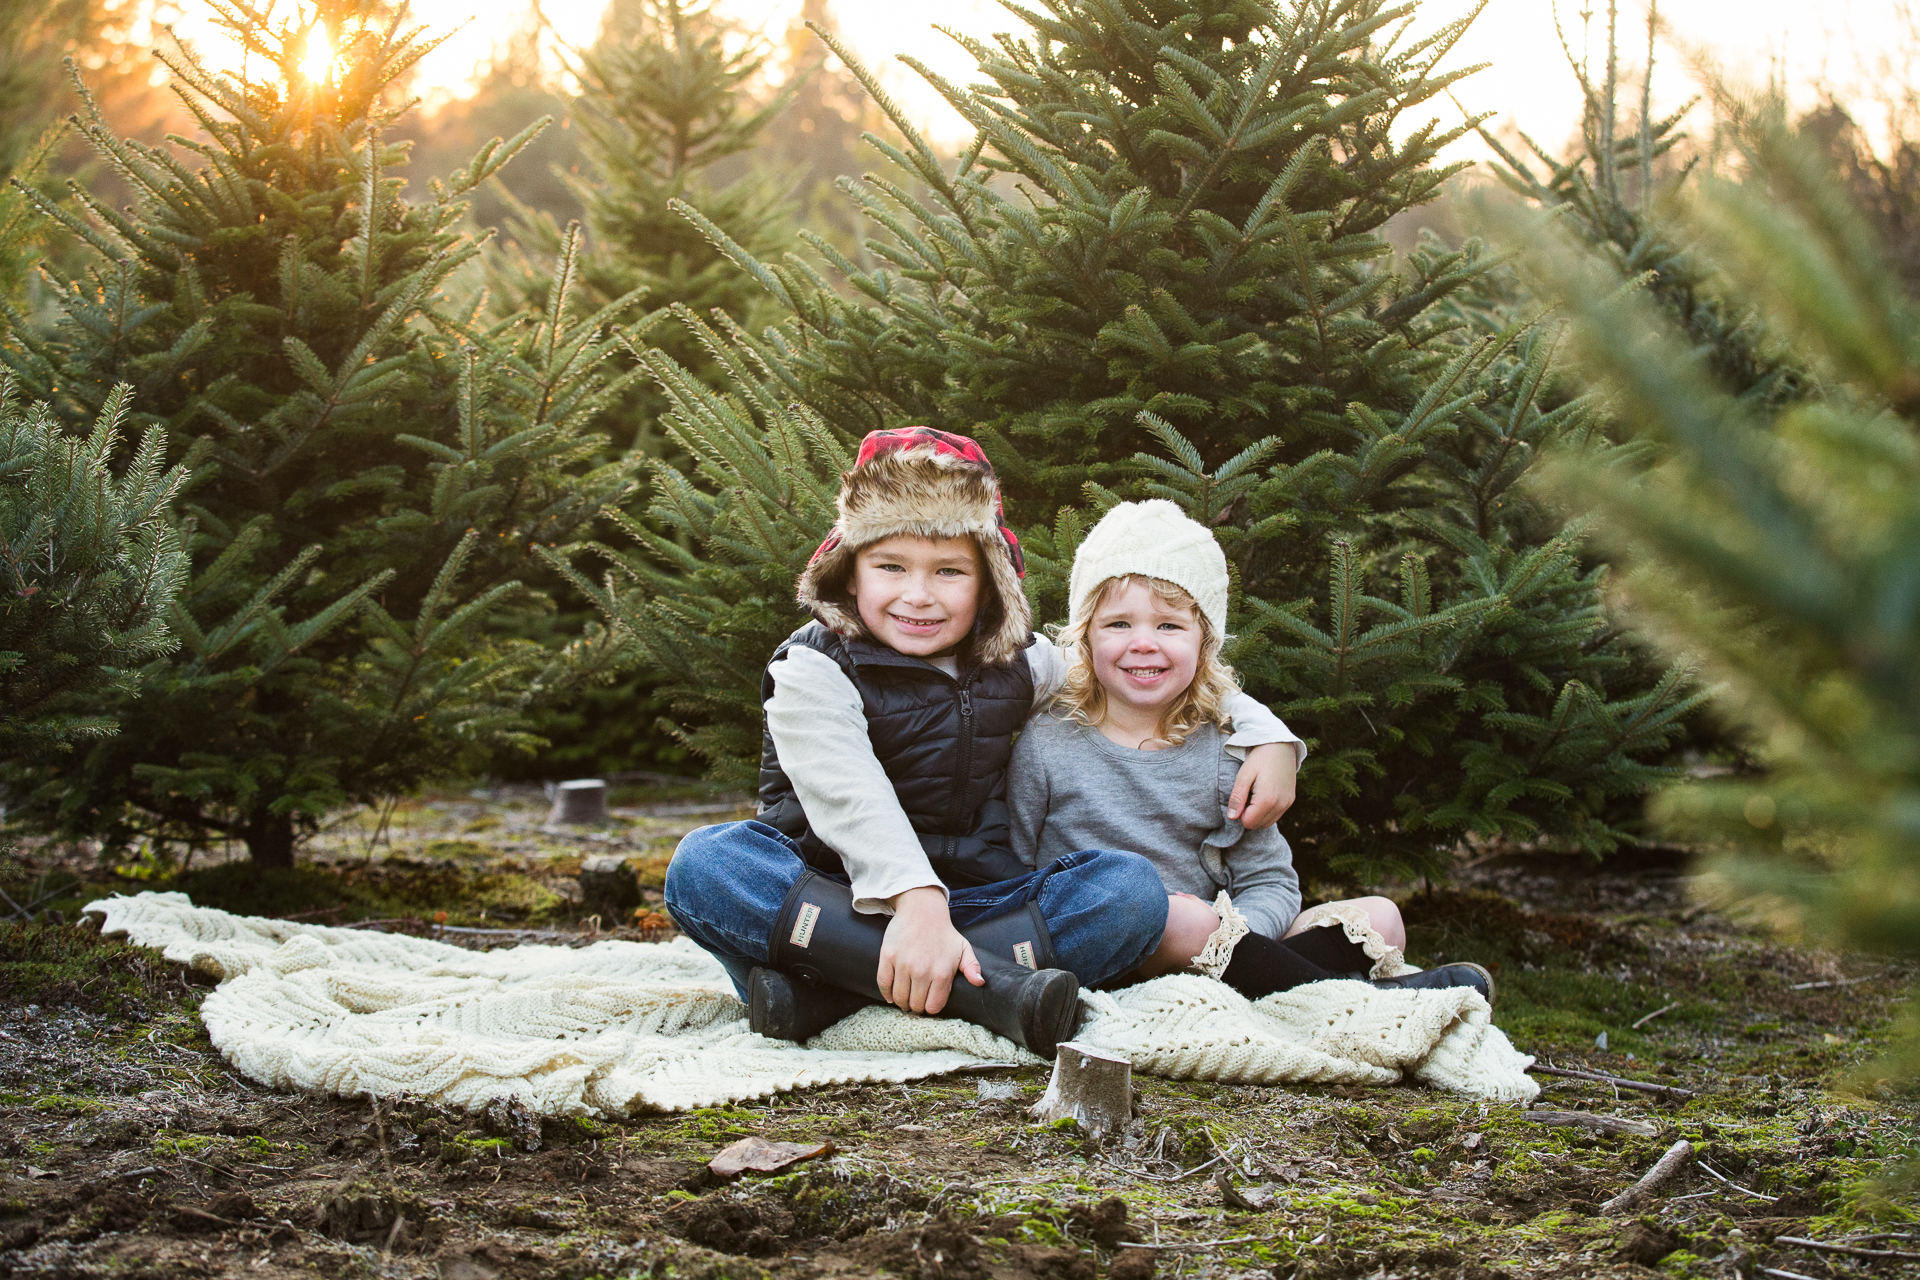 Christmas Tree Farm | Christmas Family Photos | Family Christmas Card Ideas